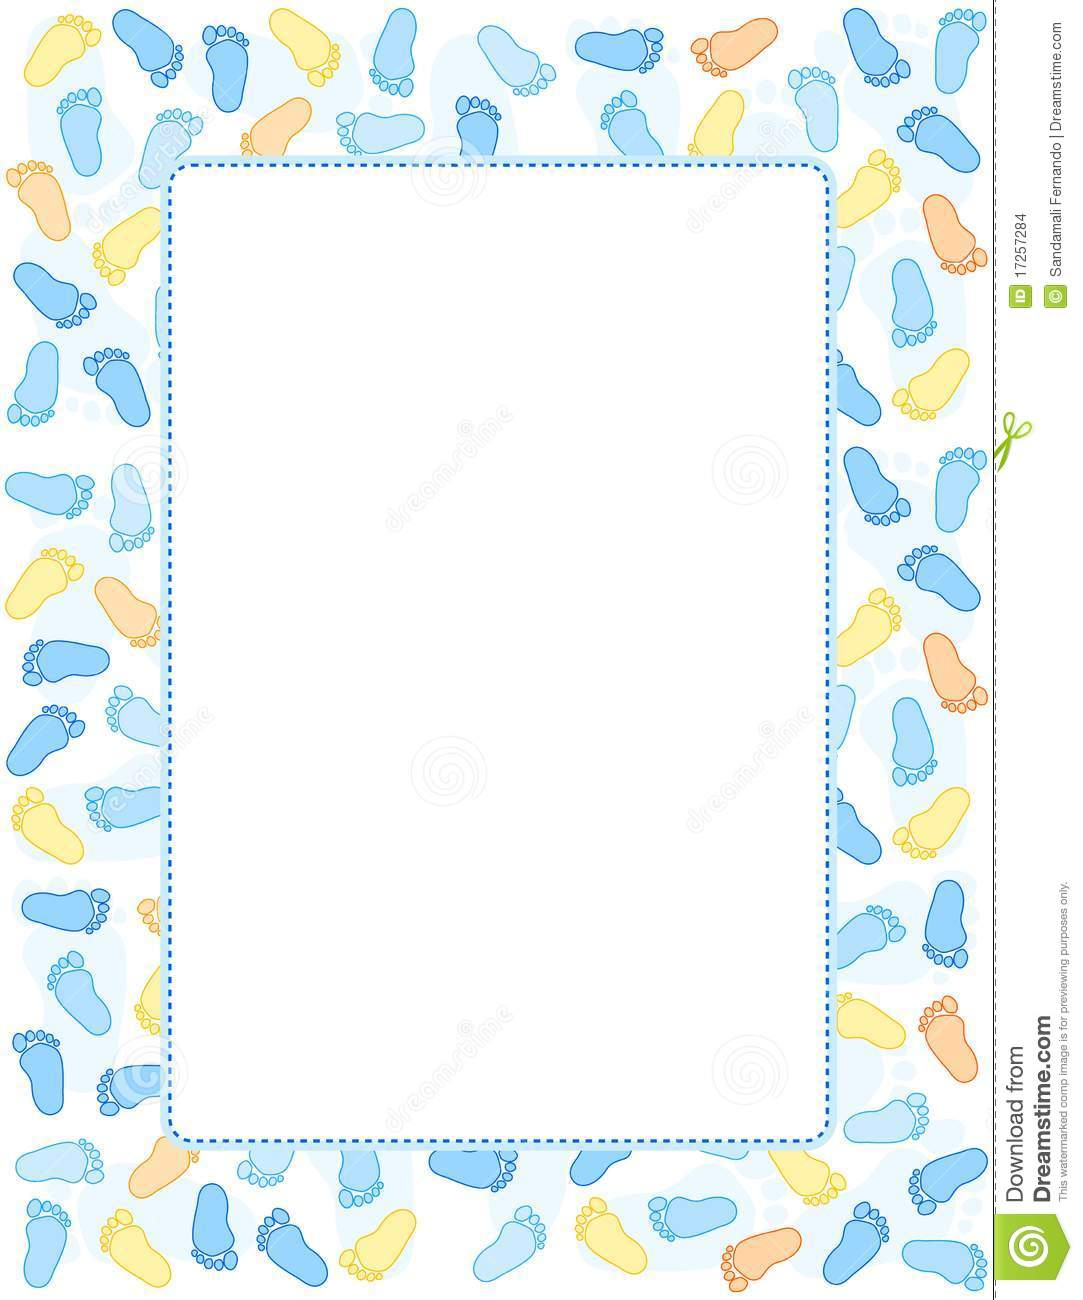 Go Back Pix For Baby Boy Footprint Backgrounds 1083x1300